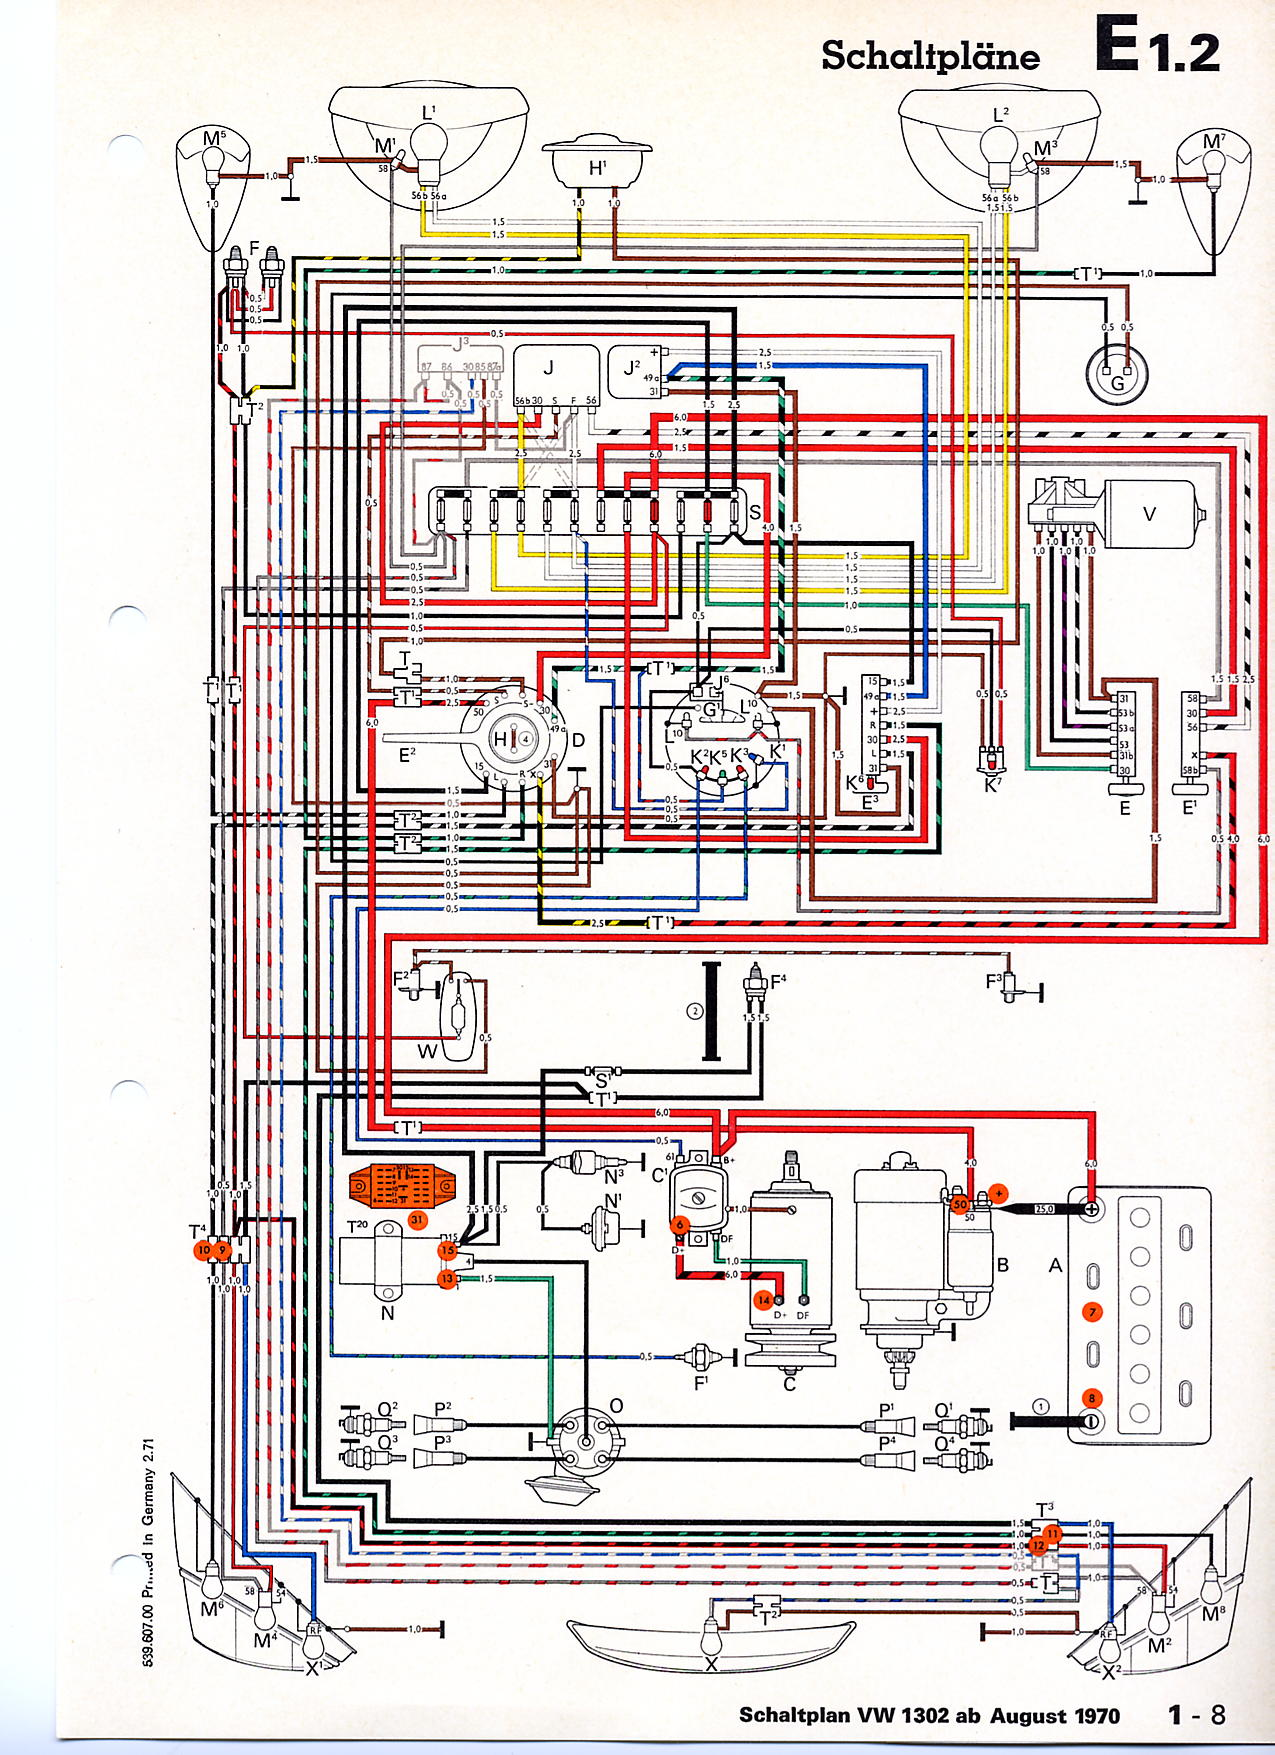 1974 VW Super Beetle Wiring Diagram also 73 VW Beetle Ignition Switch Wiring Diagram besides 1974 VW Super Beetle Wiring Diagram moreover 73 VW Beetle Wiring Diagram as well VW Beetle Wiring Diagram. on super beetle ke diagram